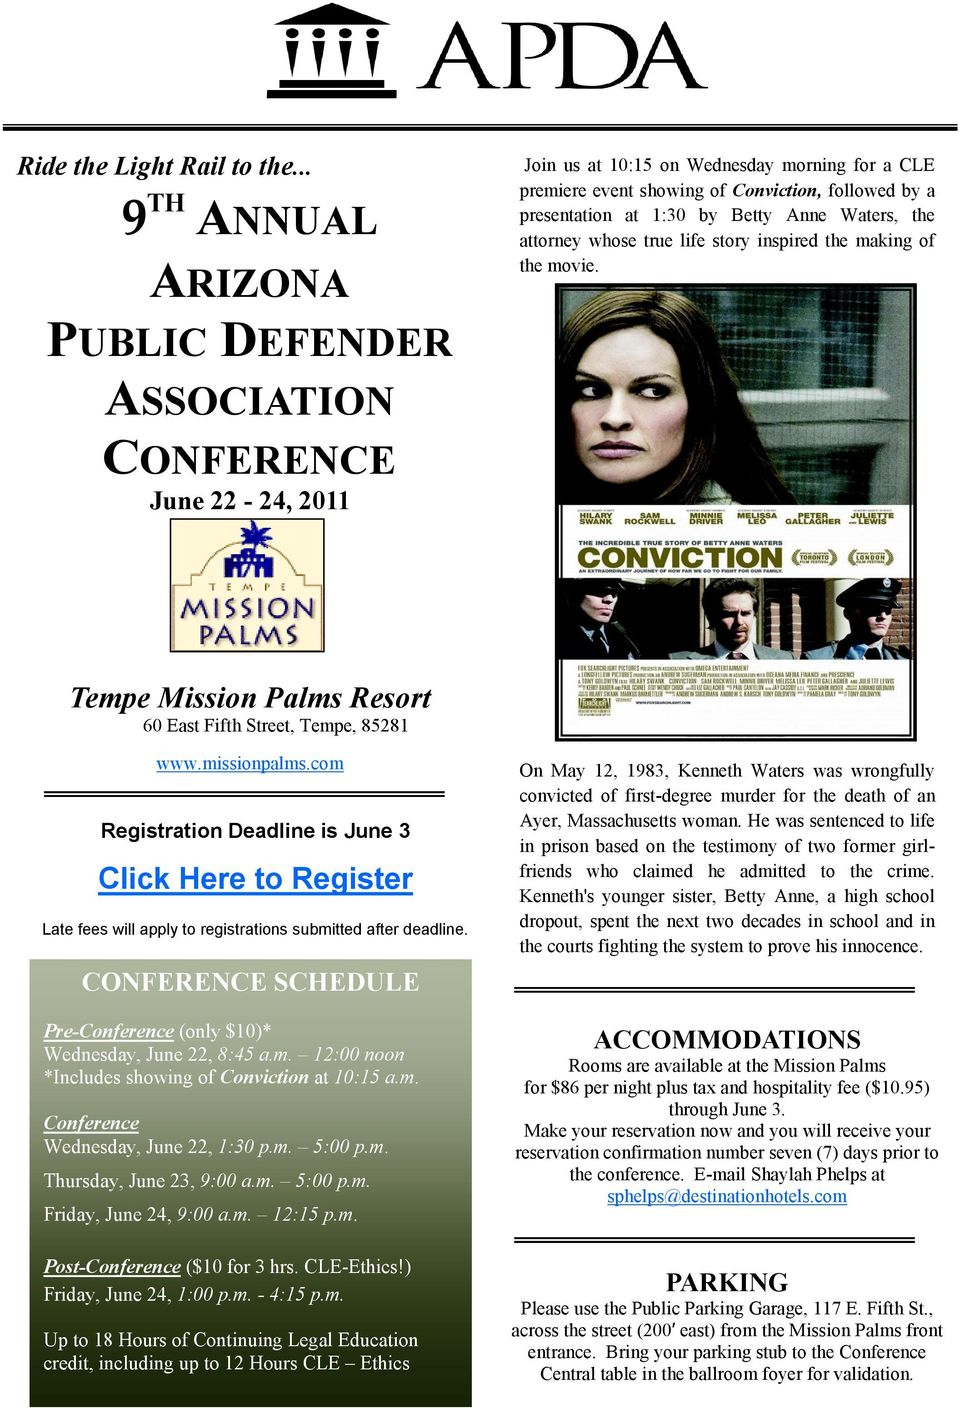 by Betty Anne Waters, the attorney whose true life story inspired the making of the movie. Tempe Mission Palms Resort 60 East Fifth Street, Tempe, 85281 www.missionpalms.